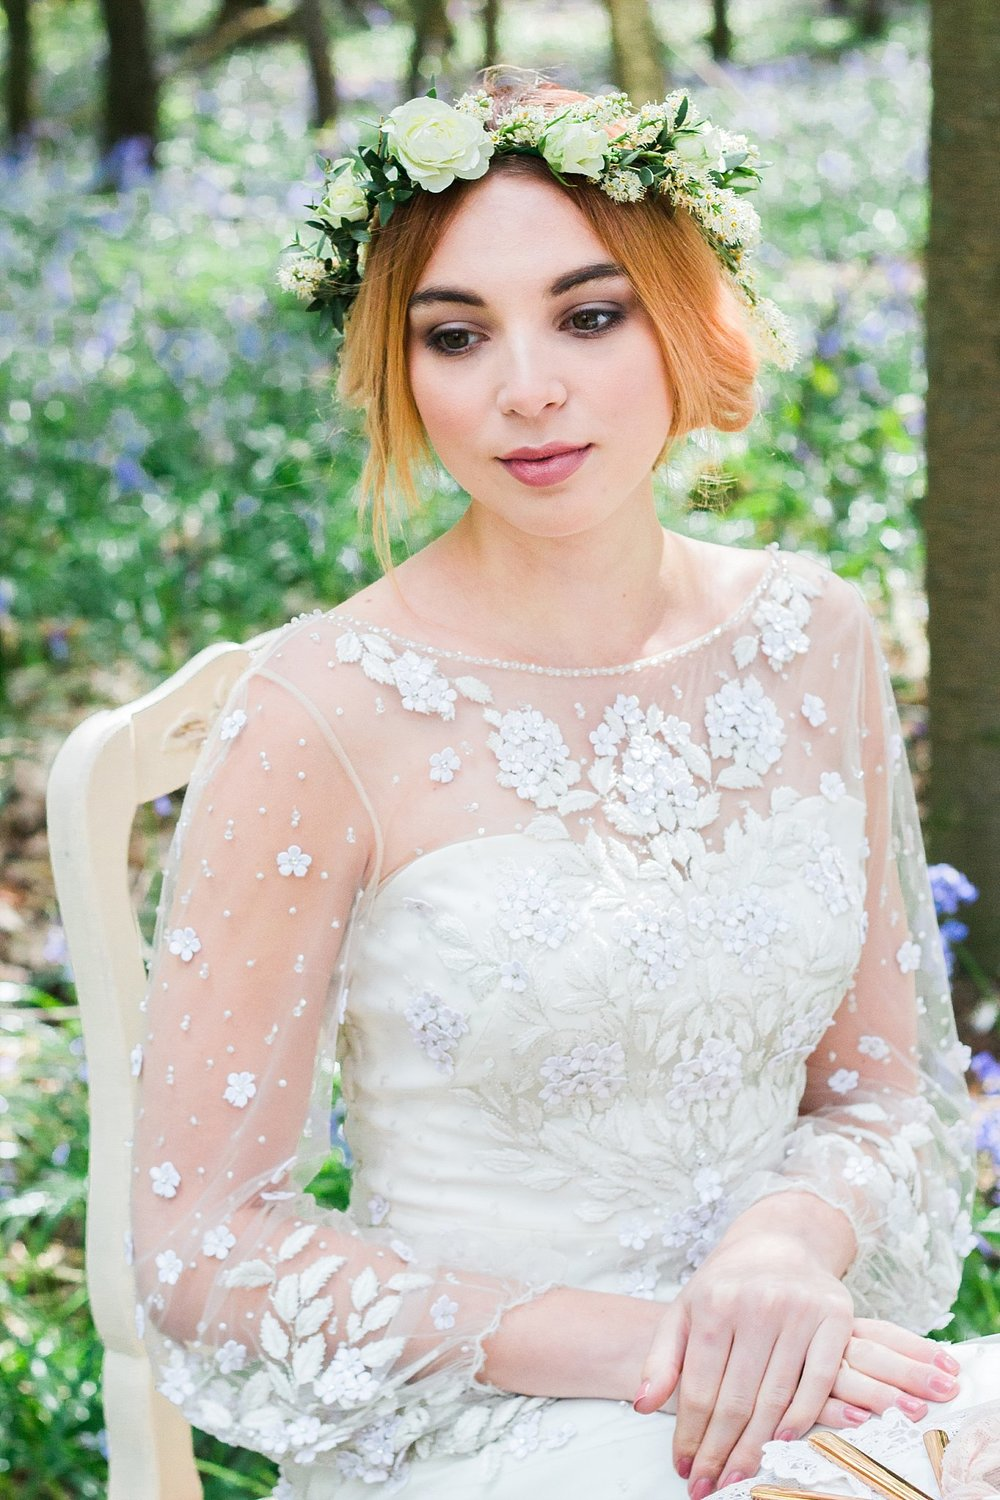 Vintage Amy Wedding Styling-Whimsical Woodland Wedding Kent-Vintage Bride Jenny Packham